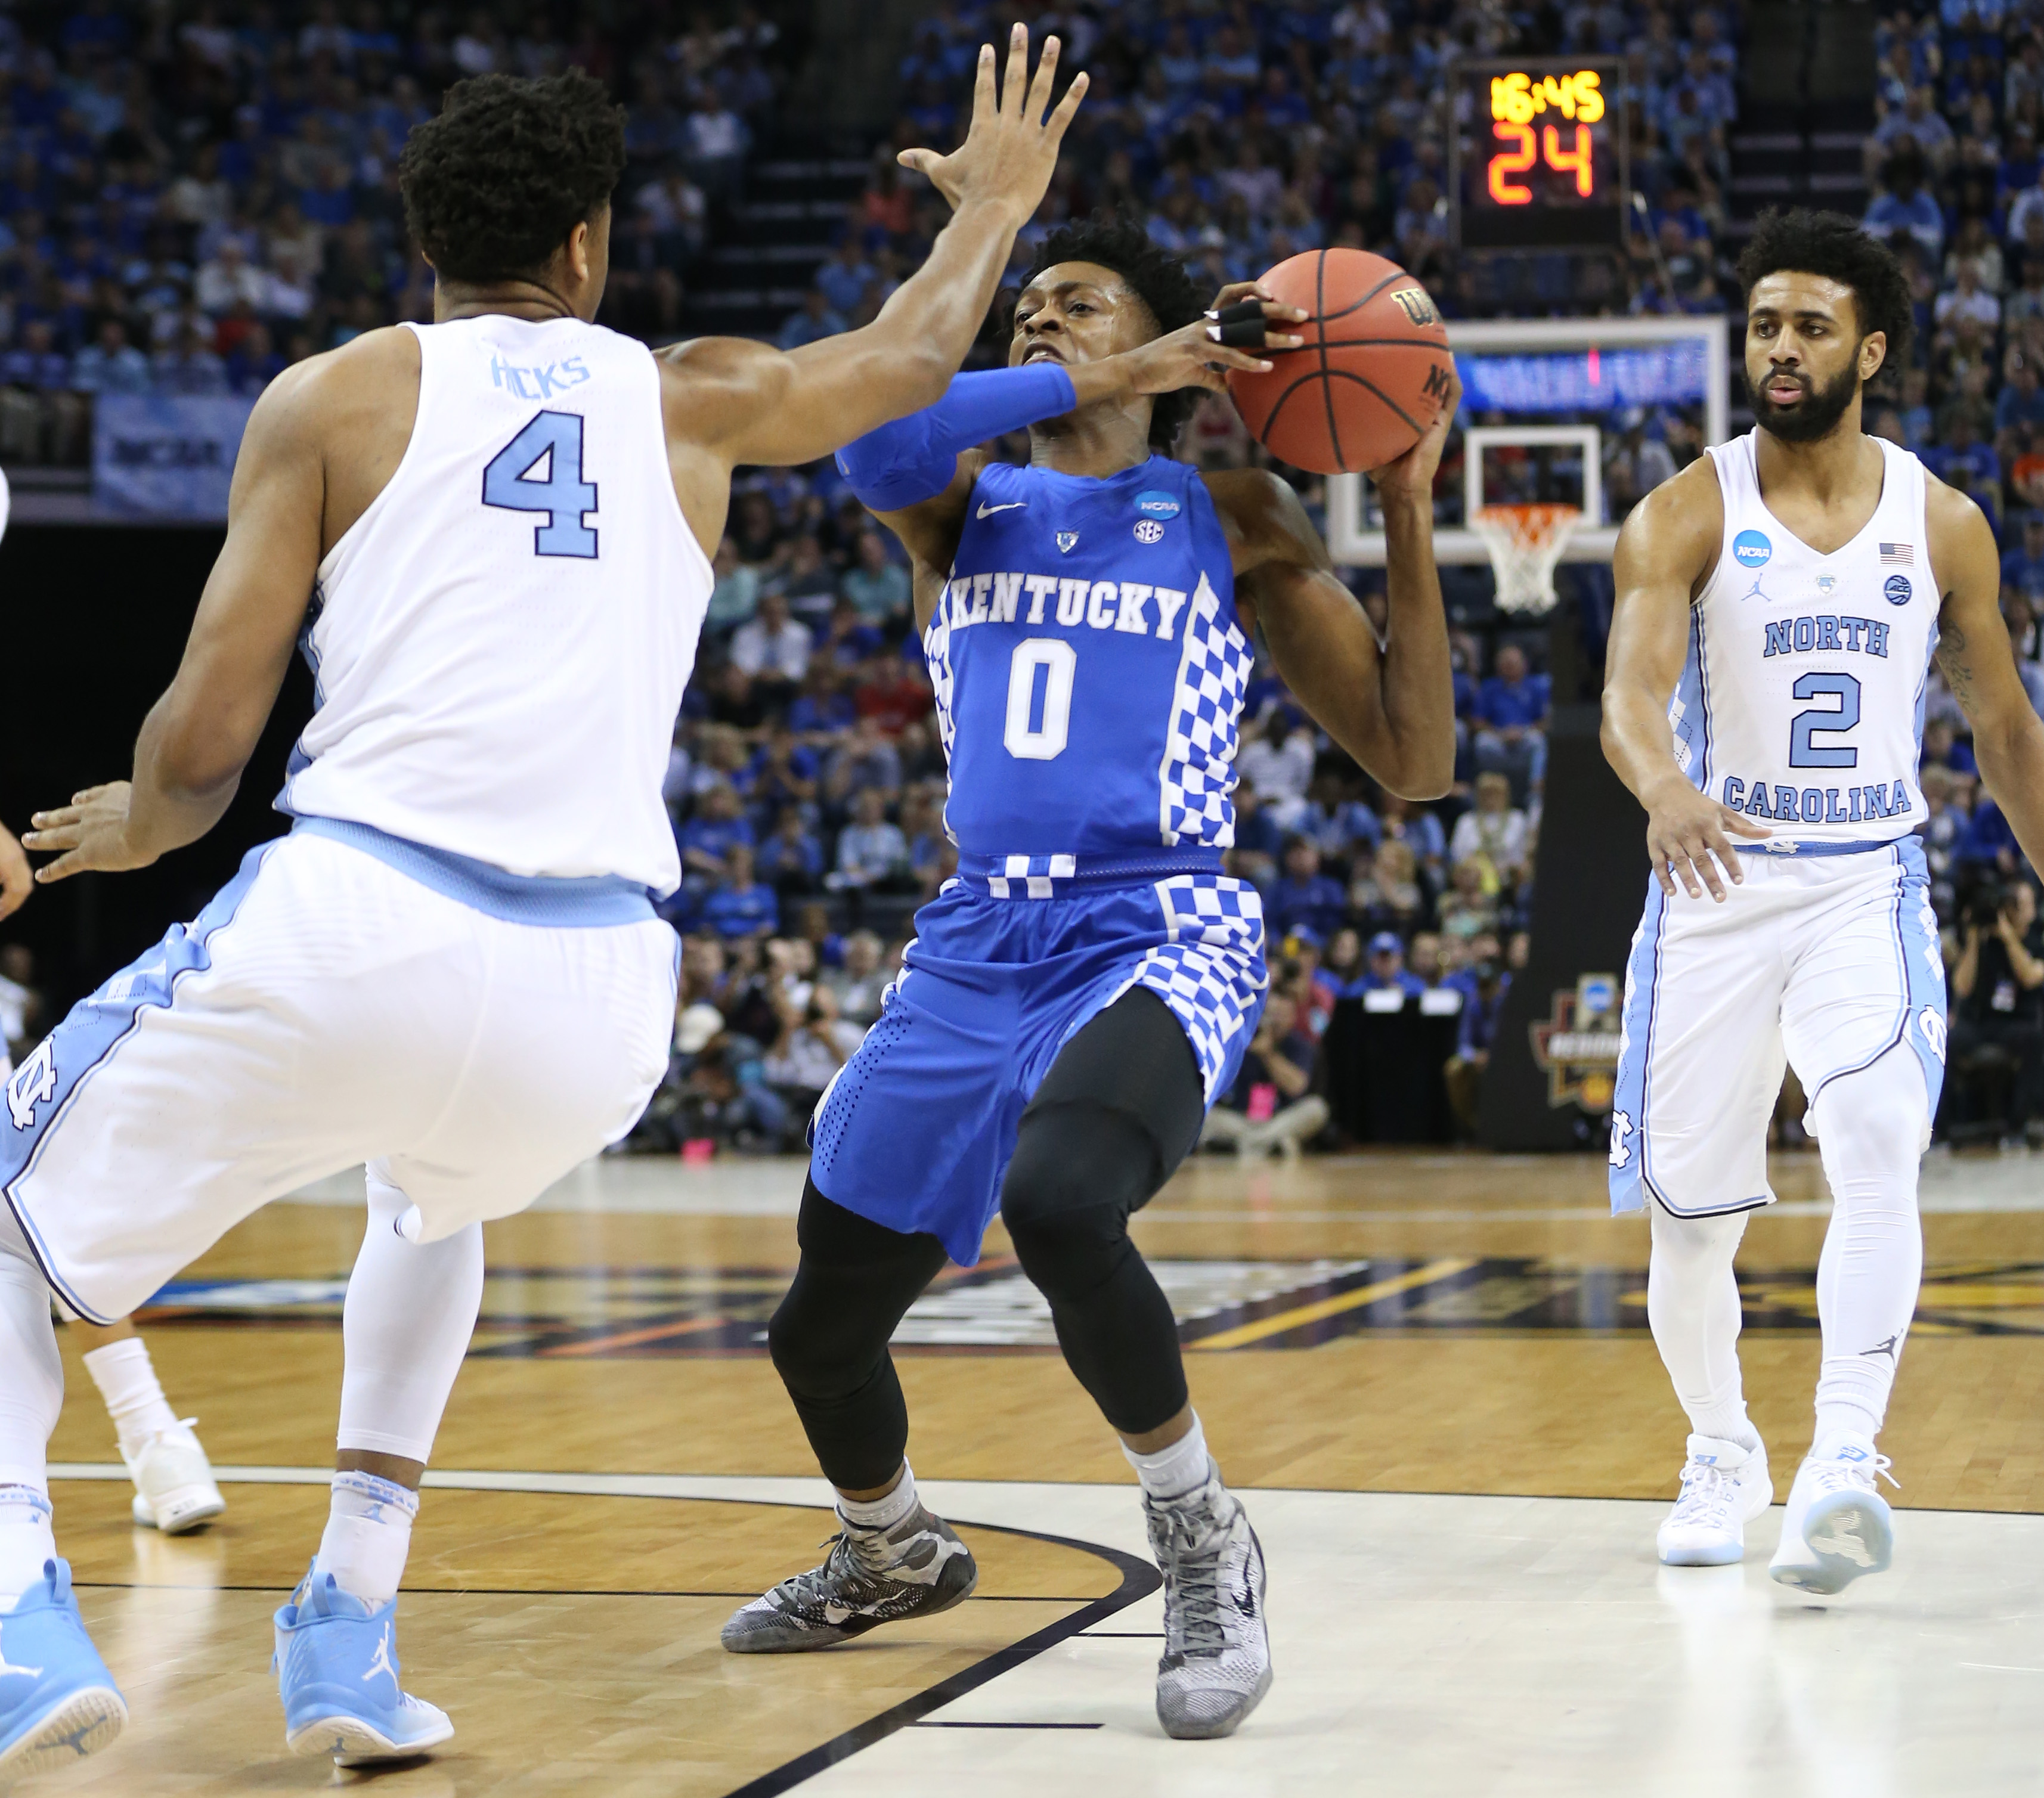 9972233-ncaa-basketball-ncaa-tournament-south-regional-kentucky-vs-north-carolina